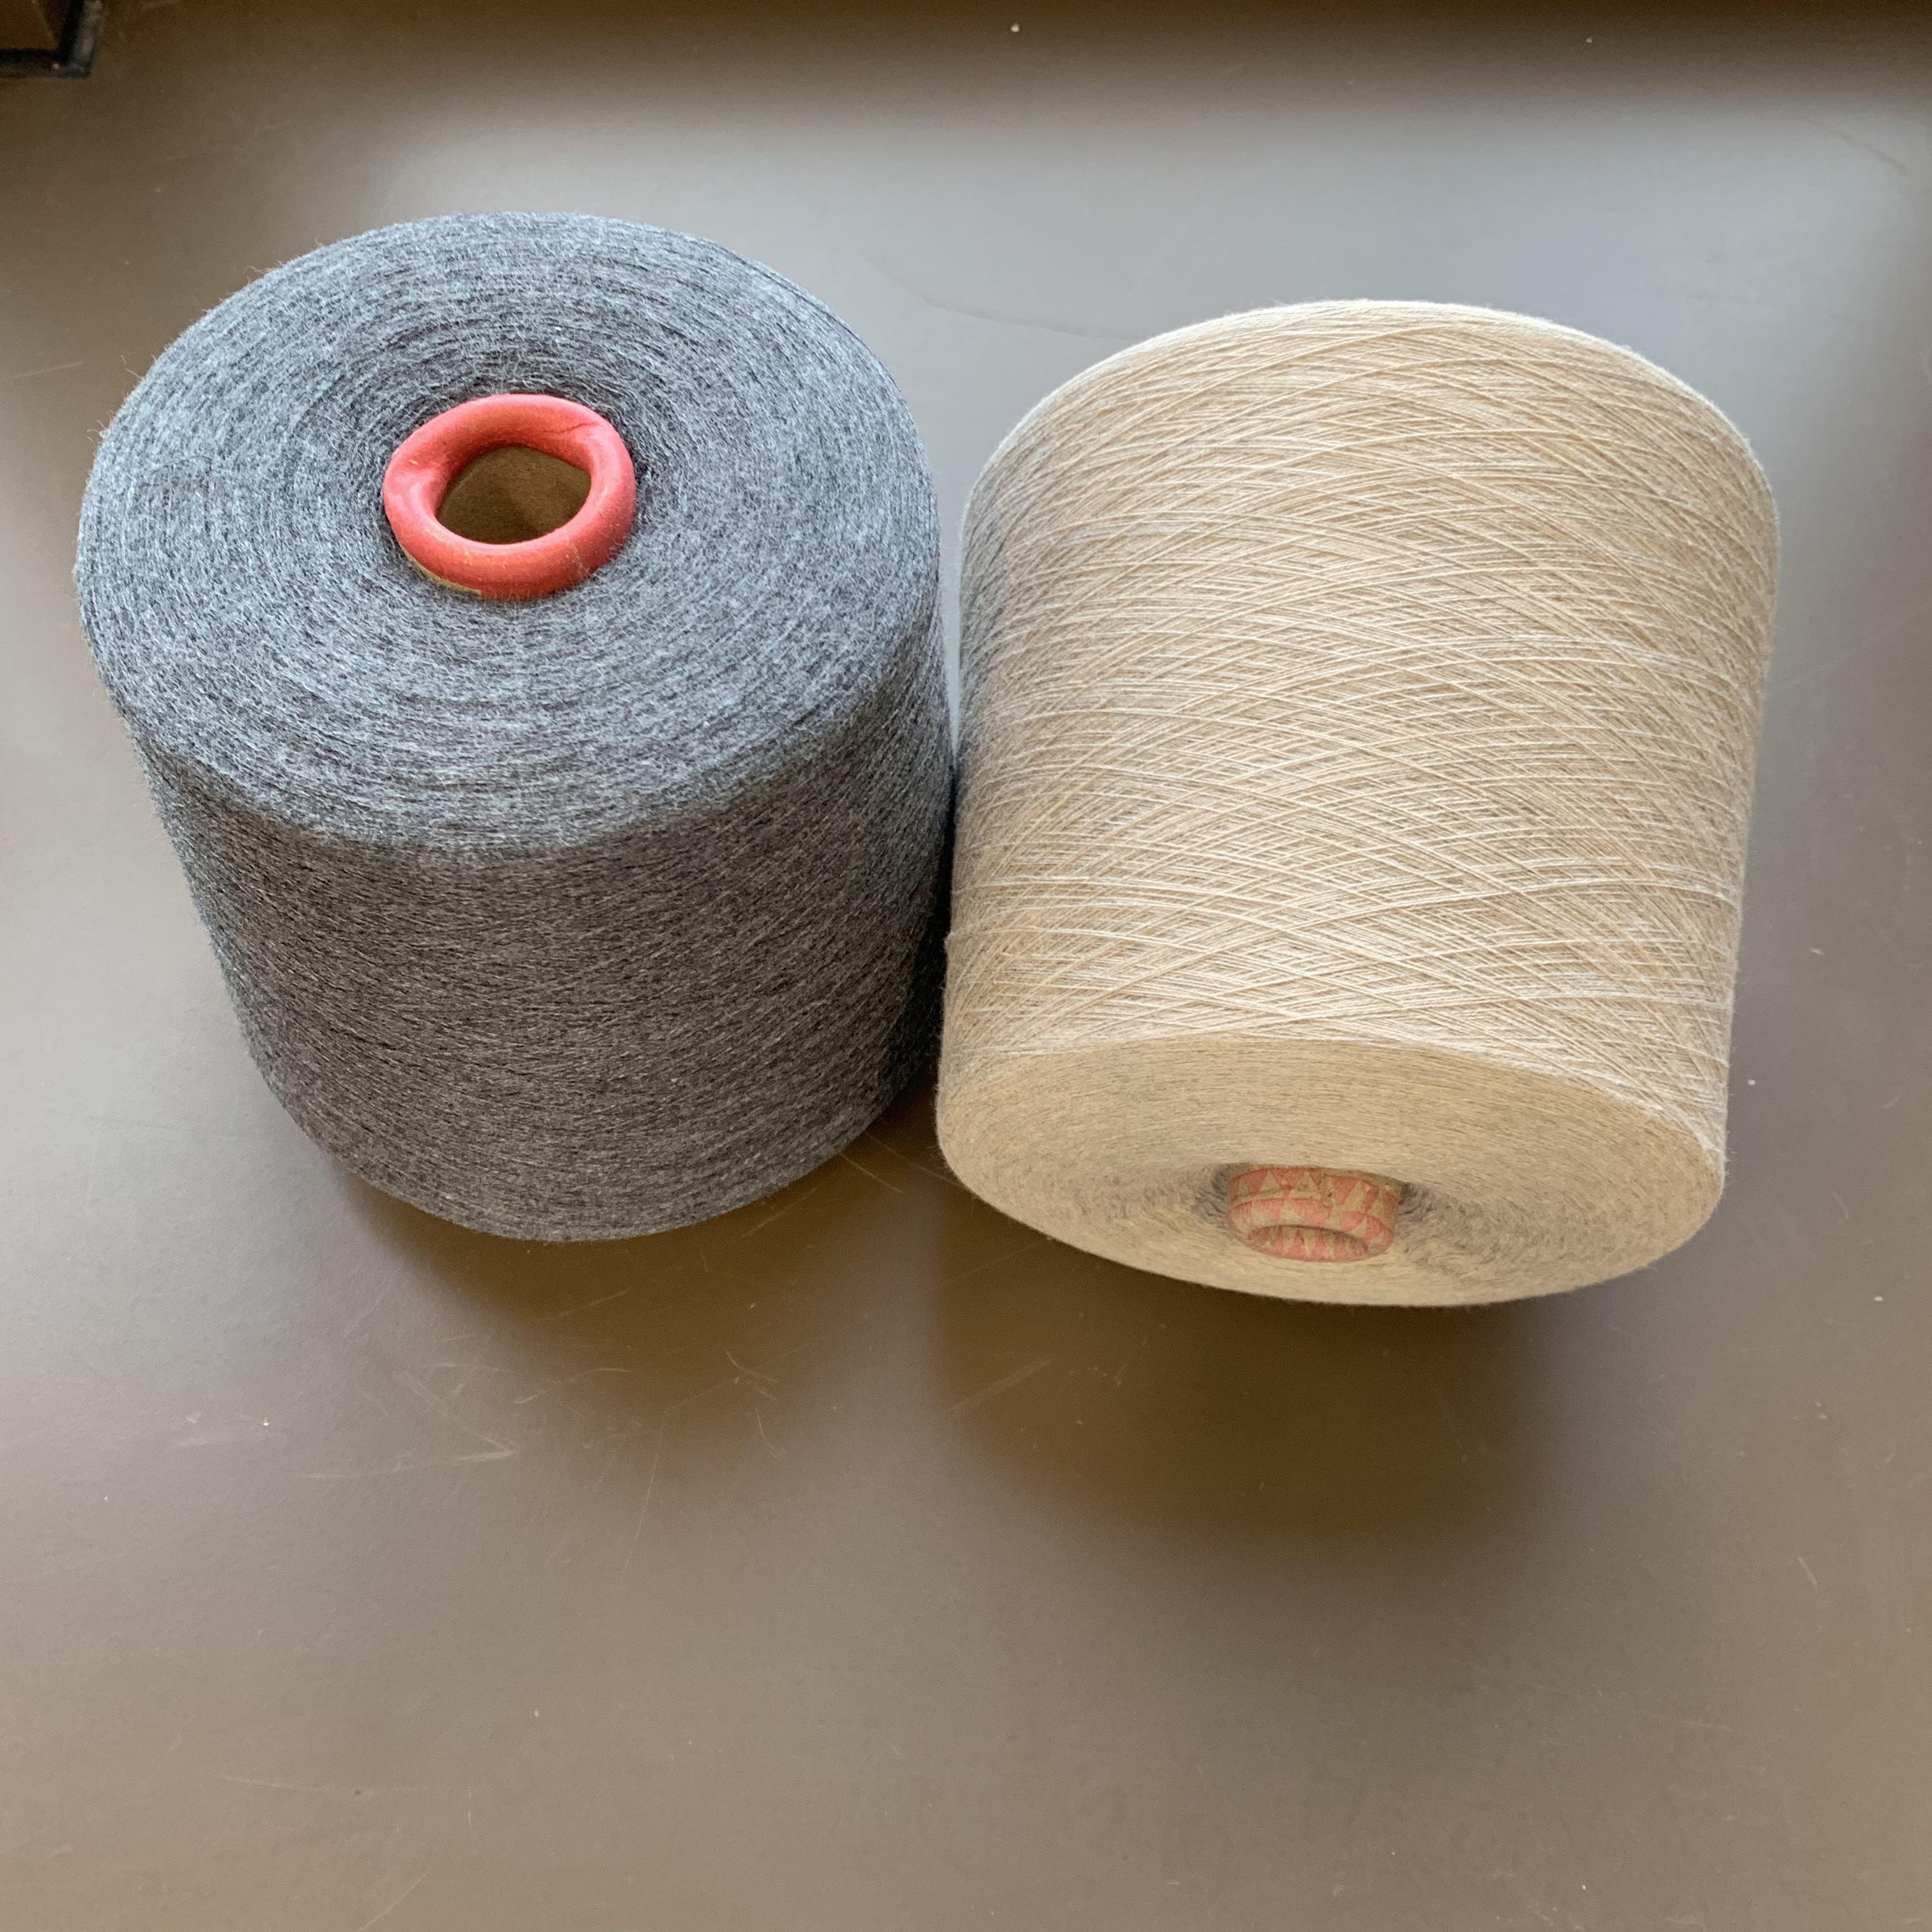 Recycled Polyester Yarn Blended 2/44NM 55%RECYCLE POLYESTER 20%ACRYLIC 20%NYLON 5%WOOL KNITTING YARN